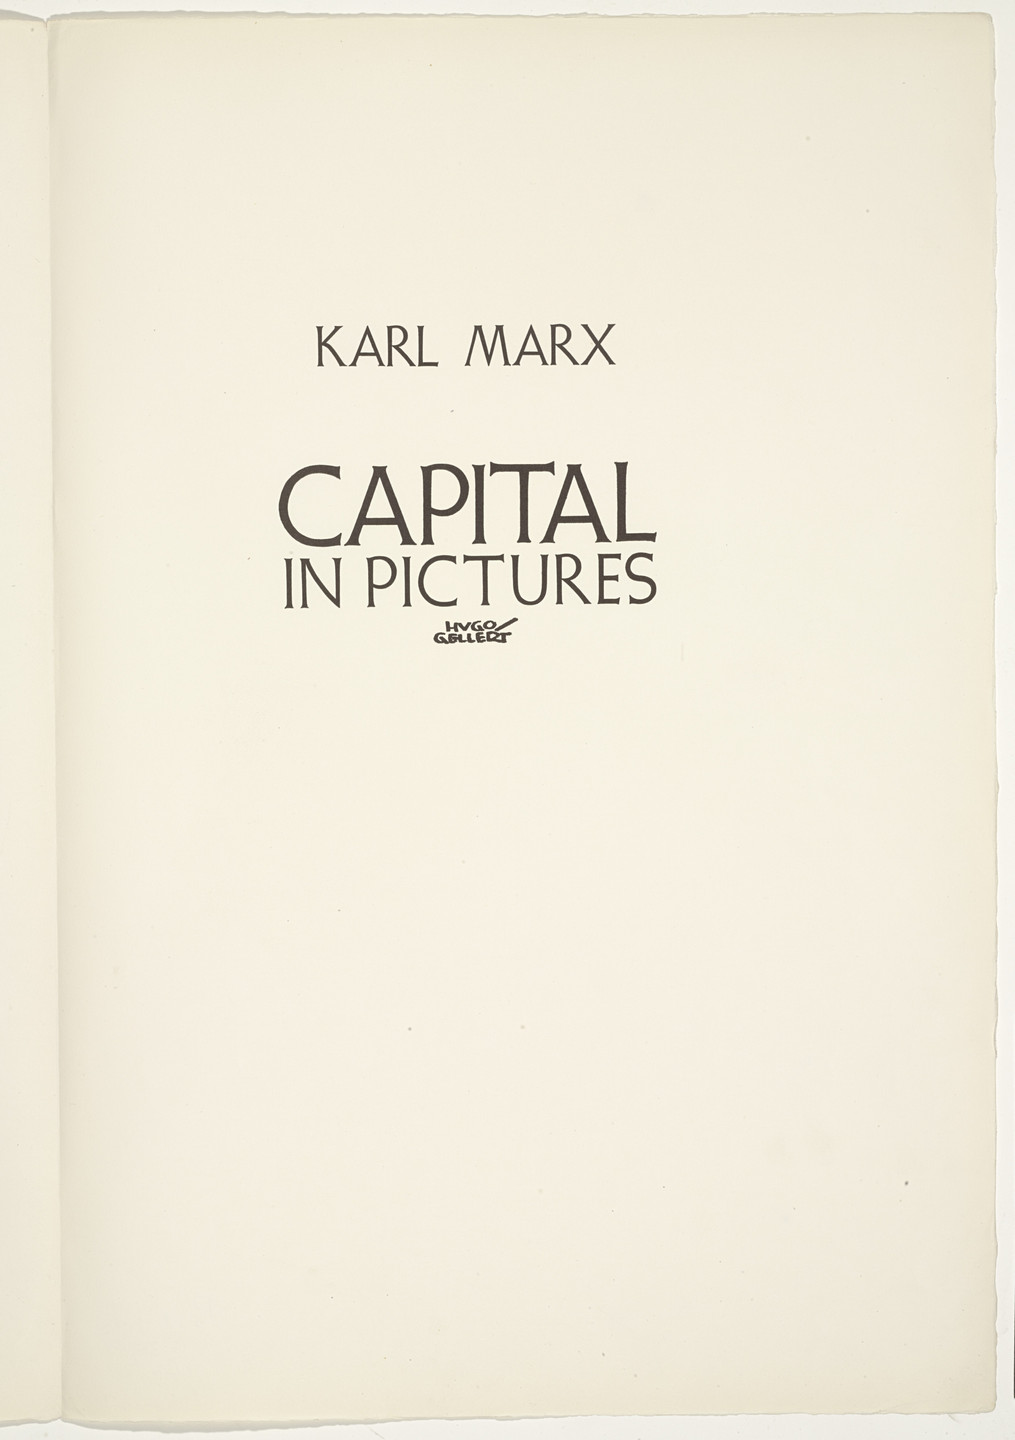 Hugo Gellert. 'Capital' in Pictures. 1933